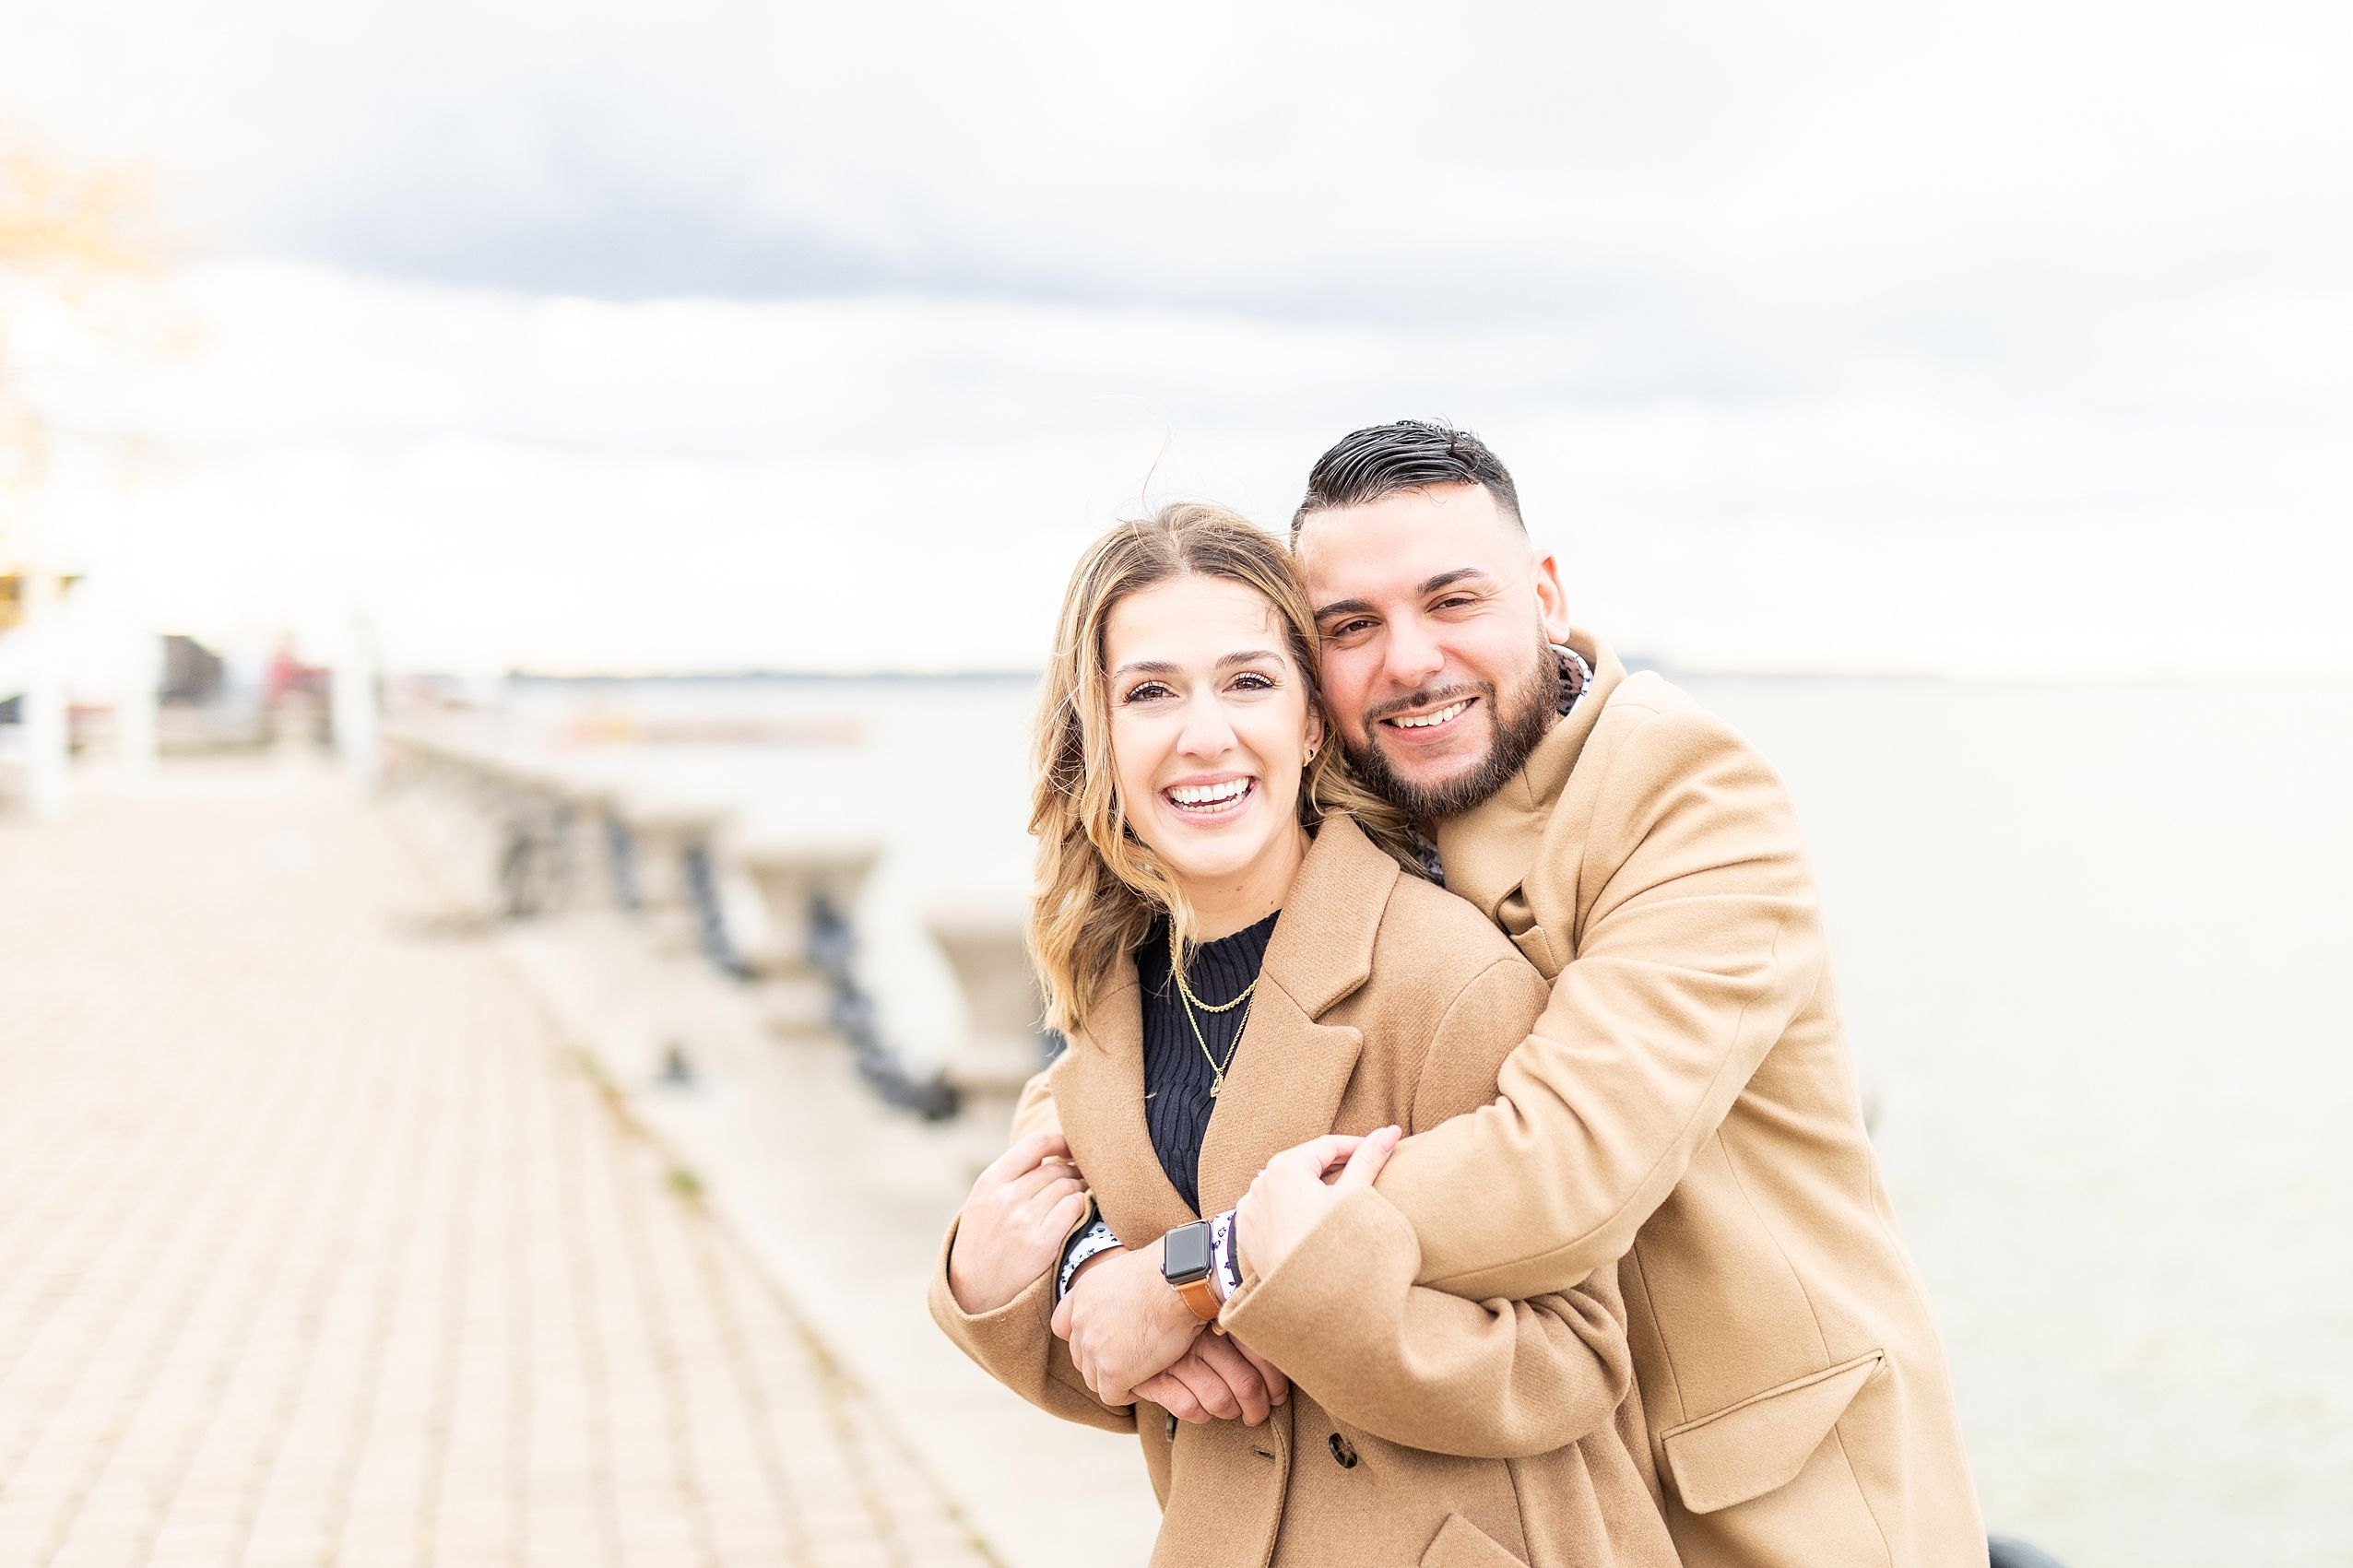 Rachel & Anthony's Engagement Session #rockandrolloutfits